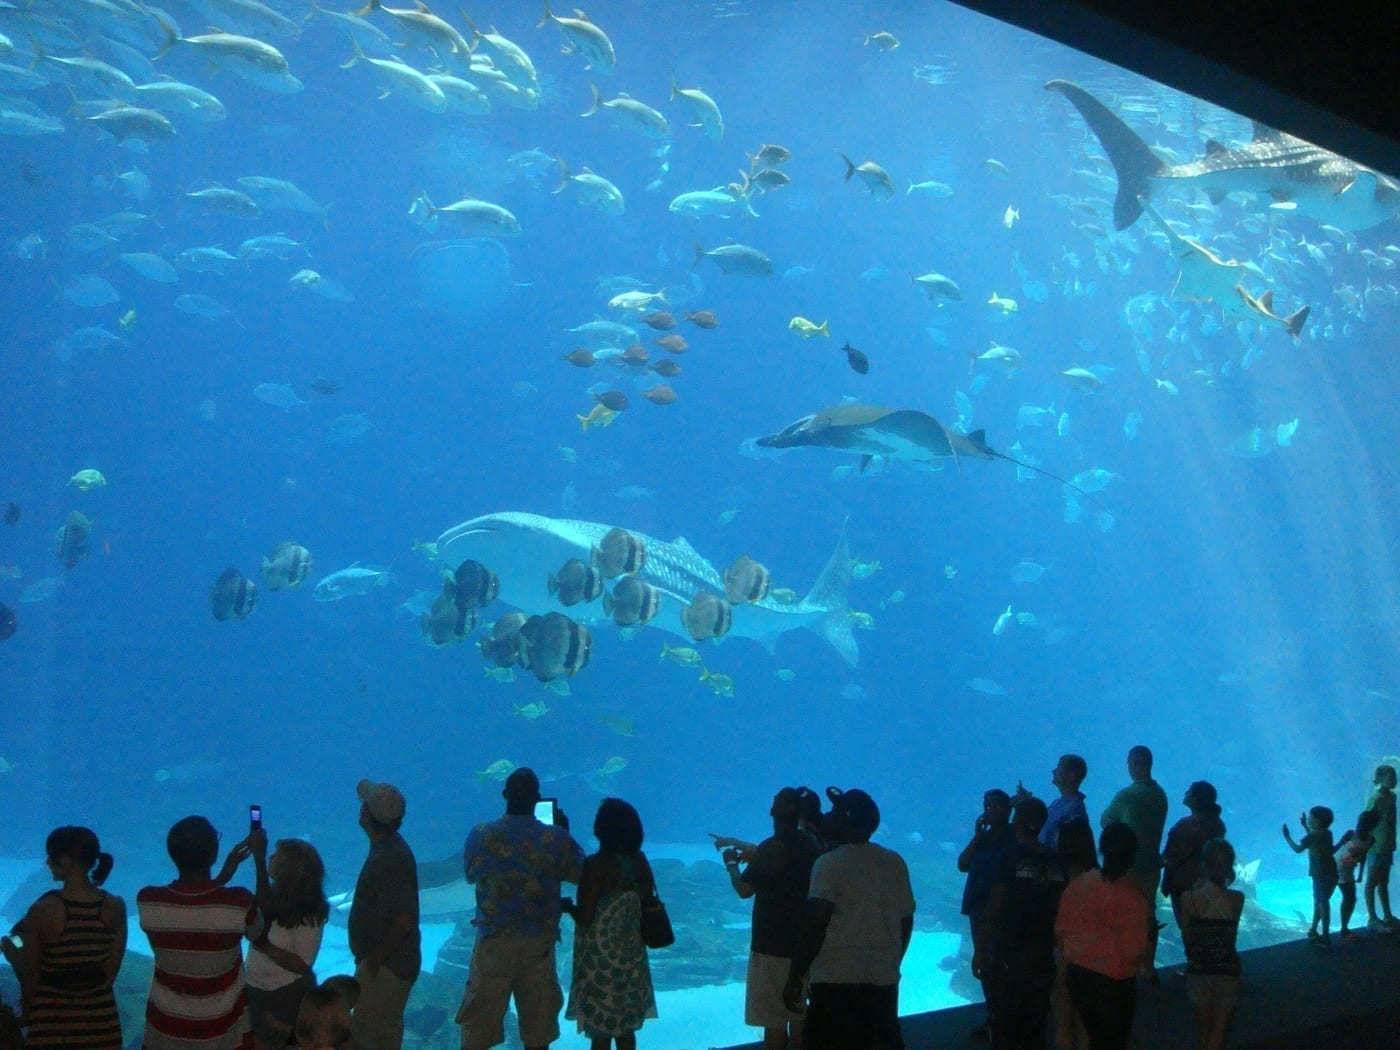 Georgia Aquarium large tank submerged viewing area